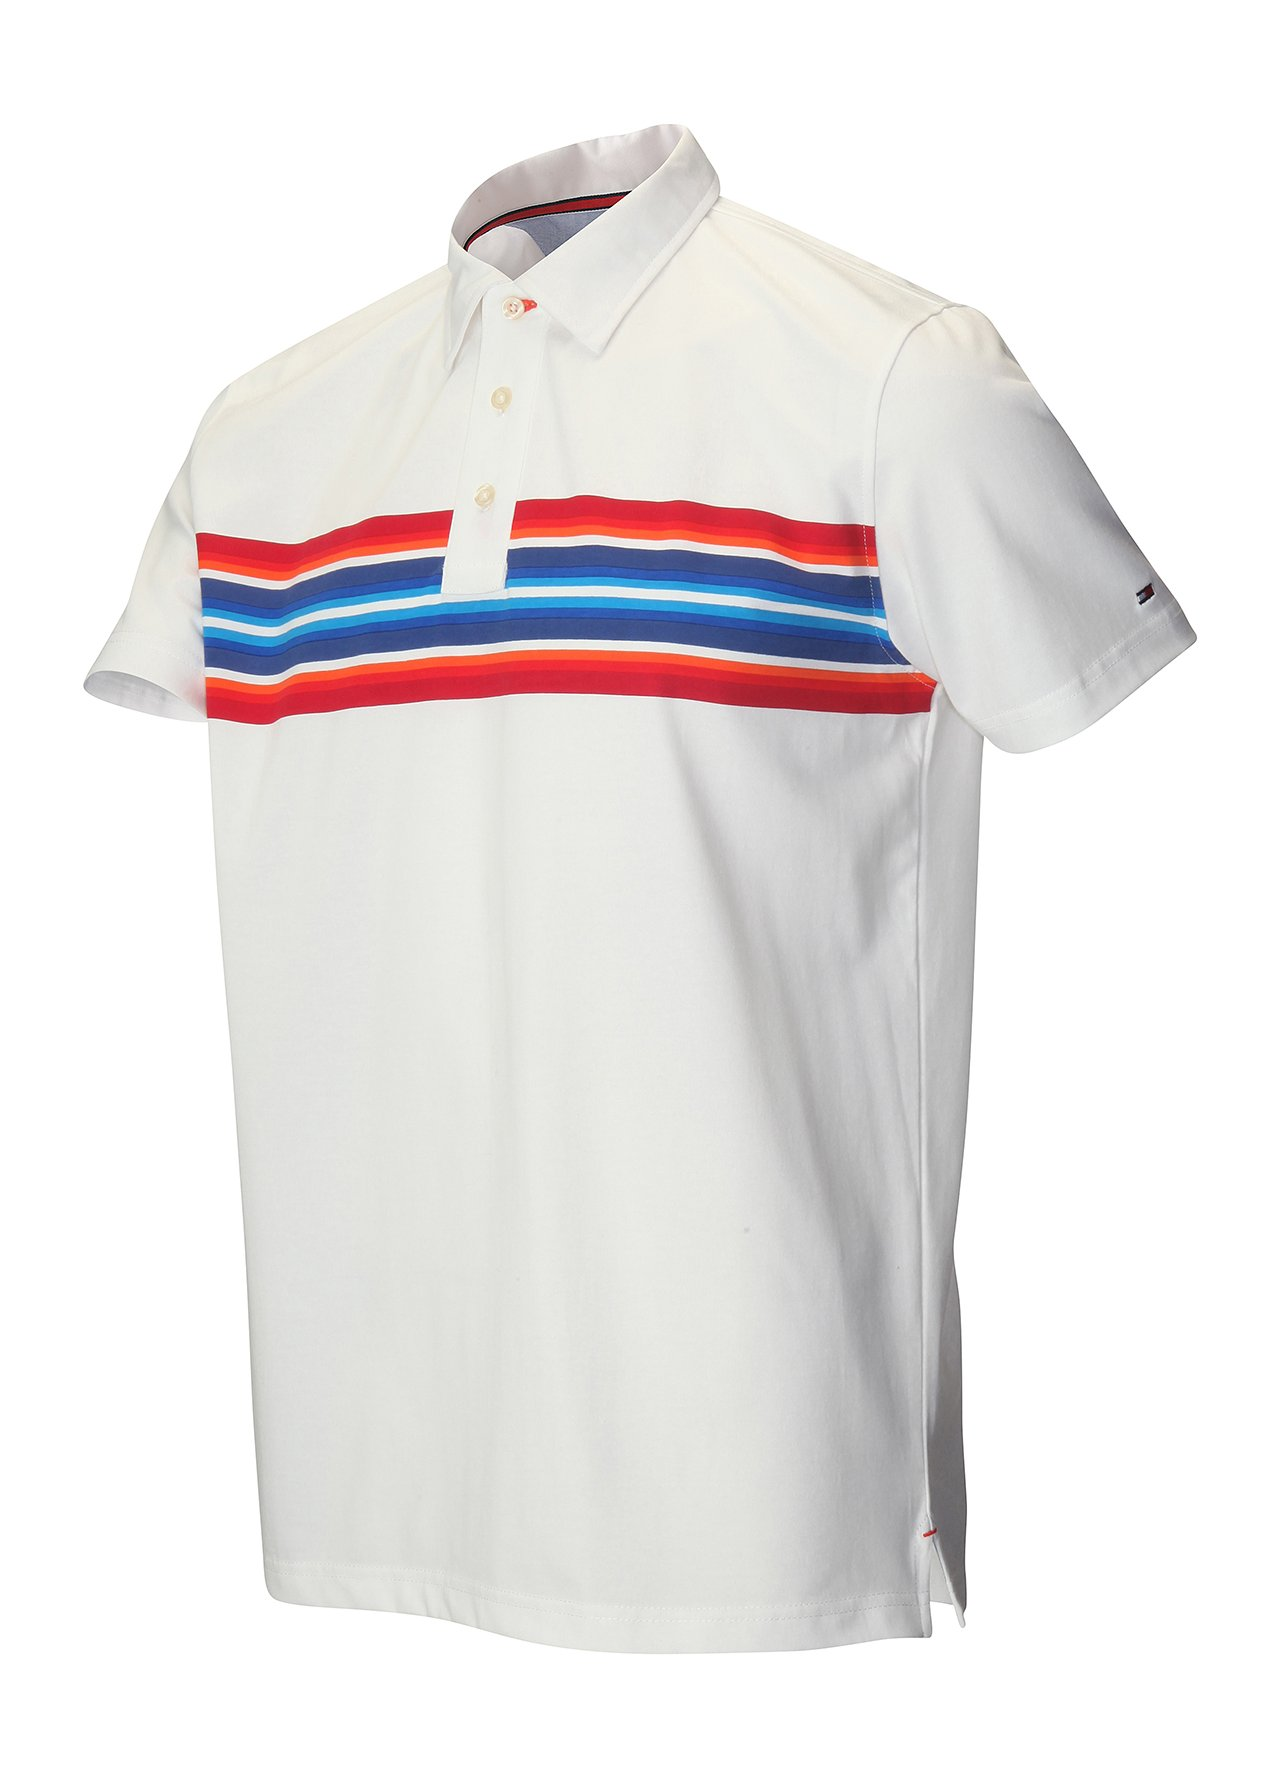 tommy hilfiger neff golf polo shirt white extra large ebay. Black Bedroom Furniture Sets. Home Design Ideas